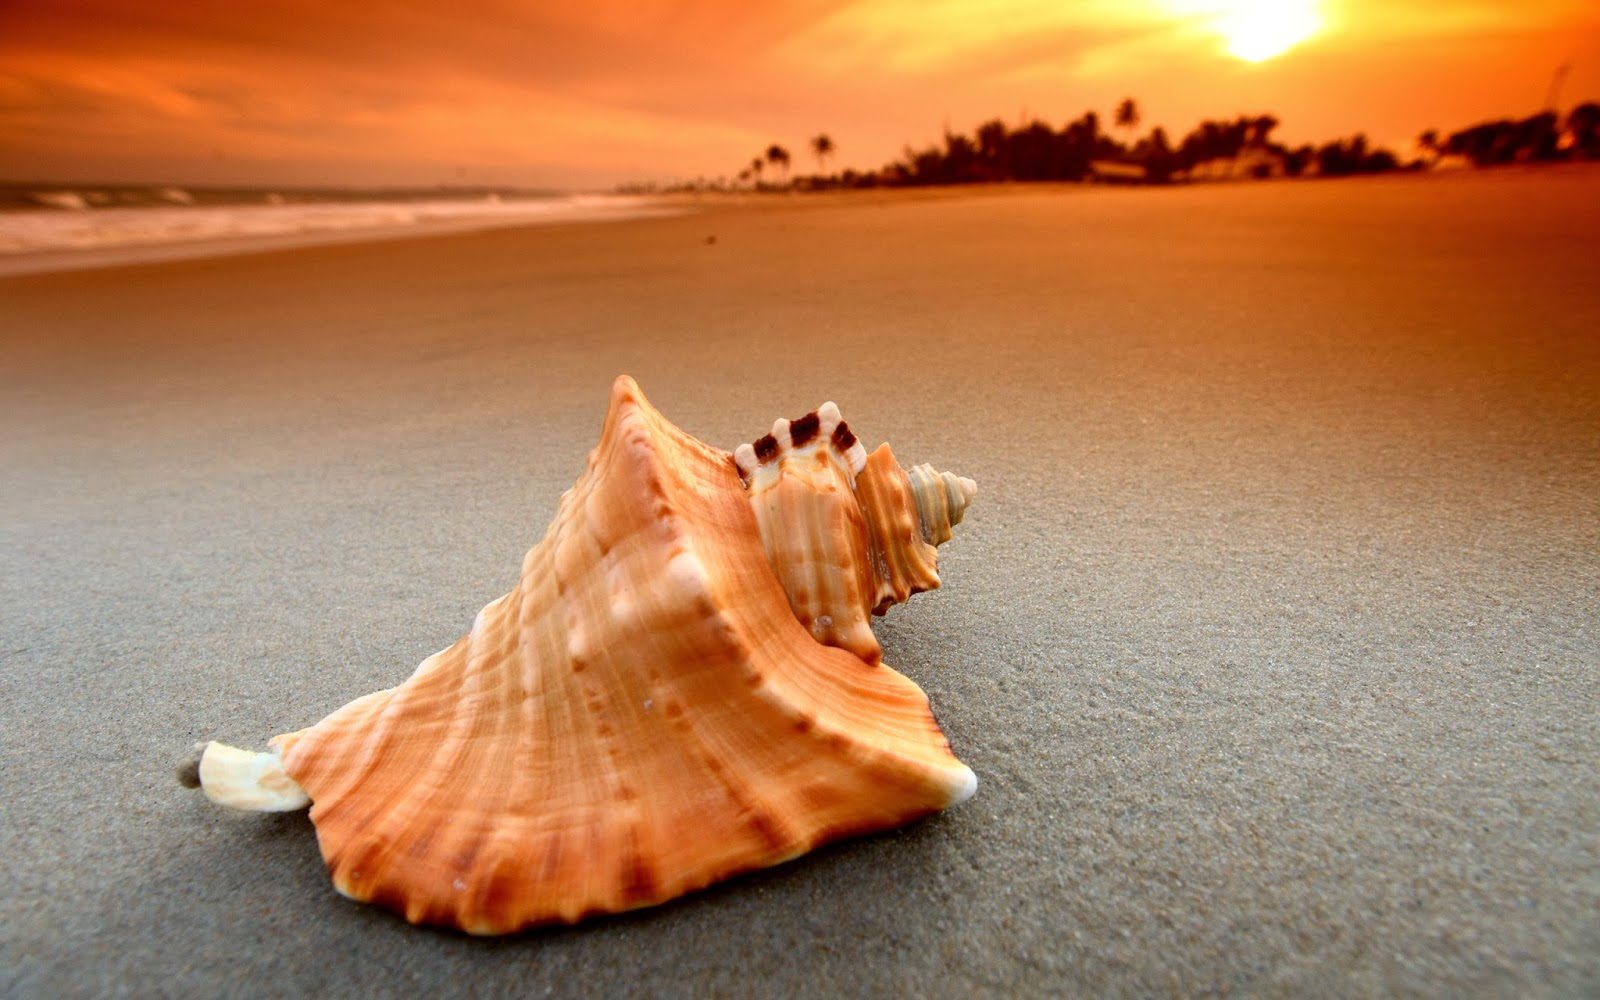 shells in the sunset wallpaper wallpaper wide hd